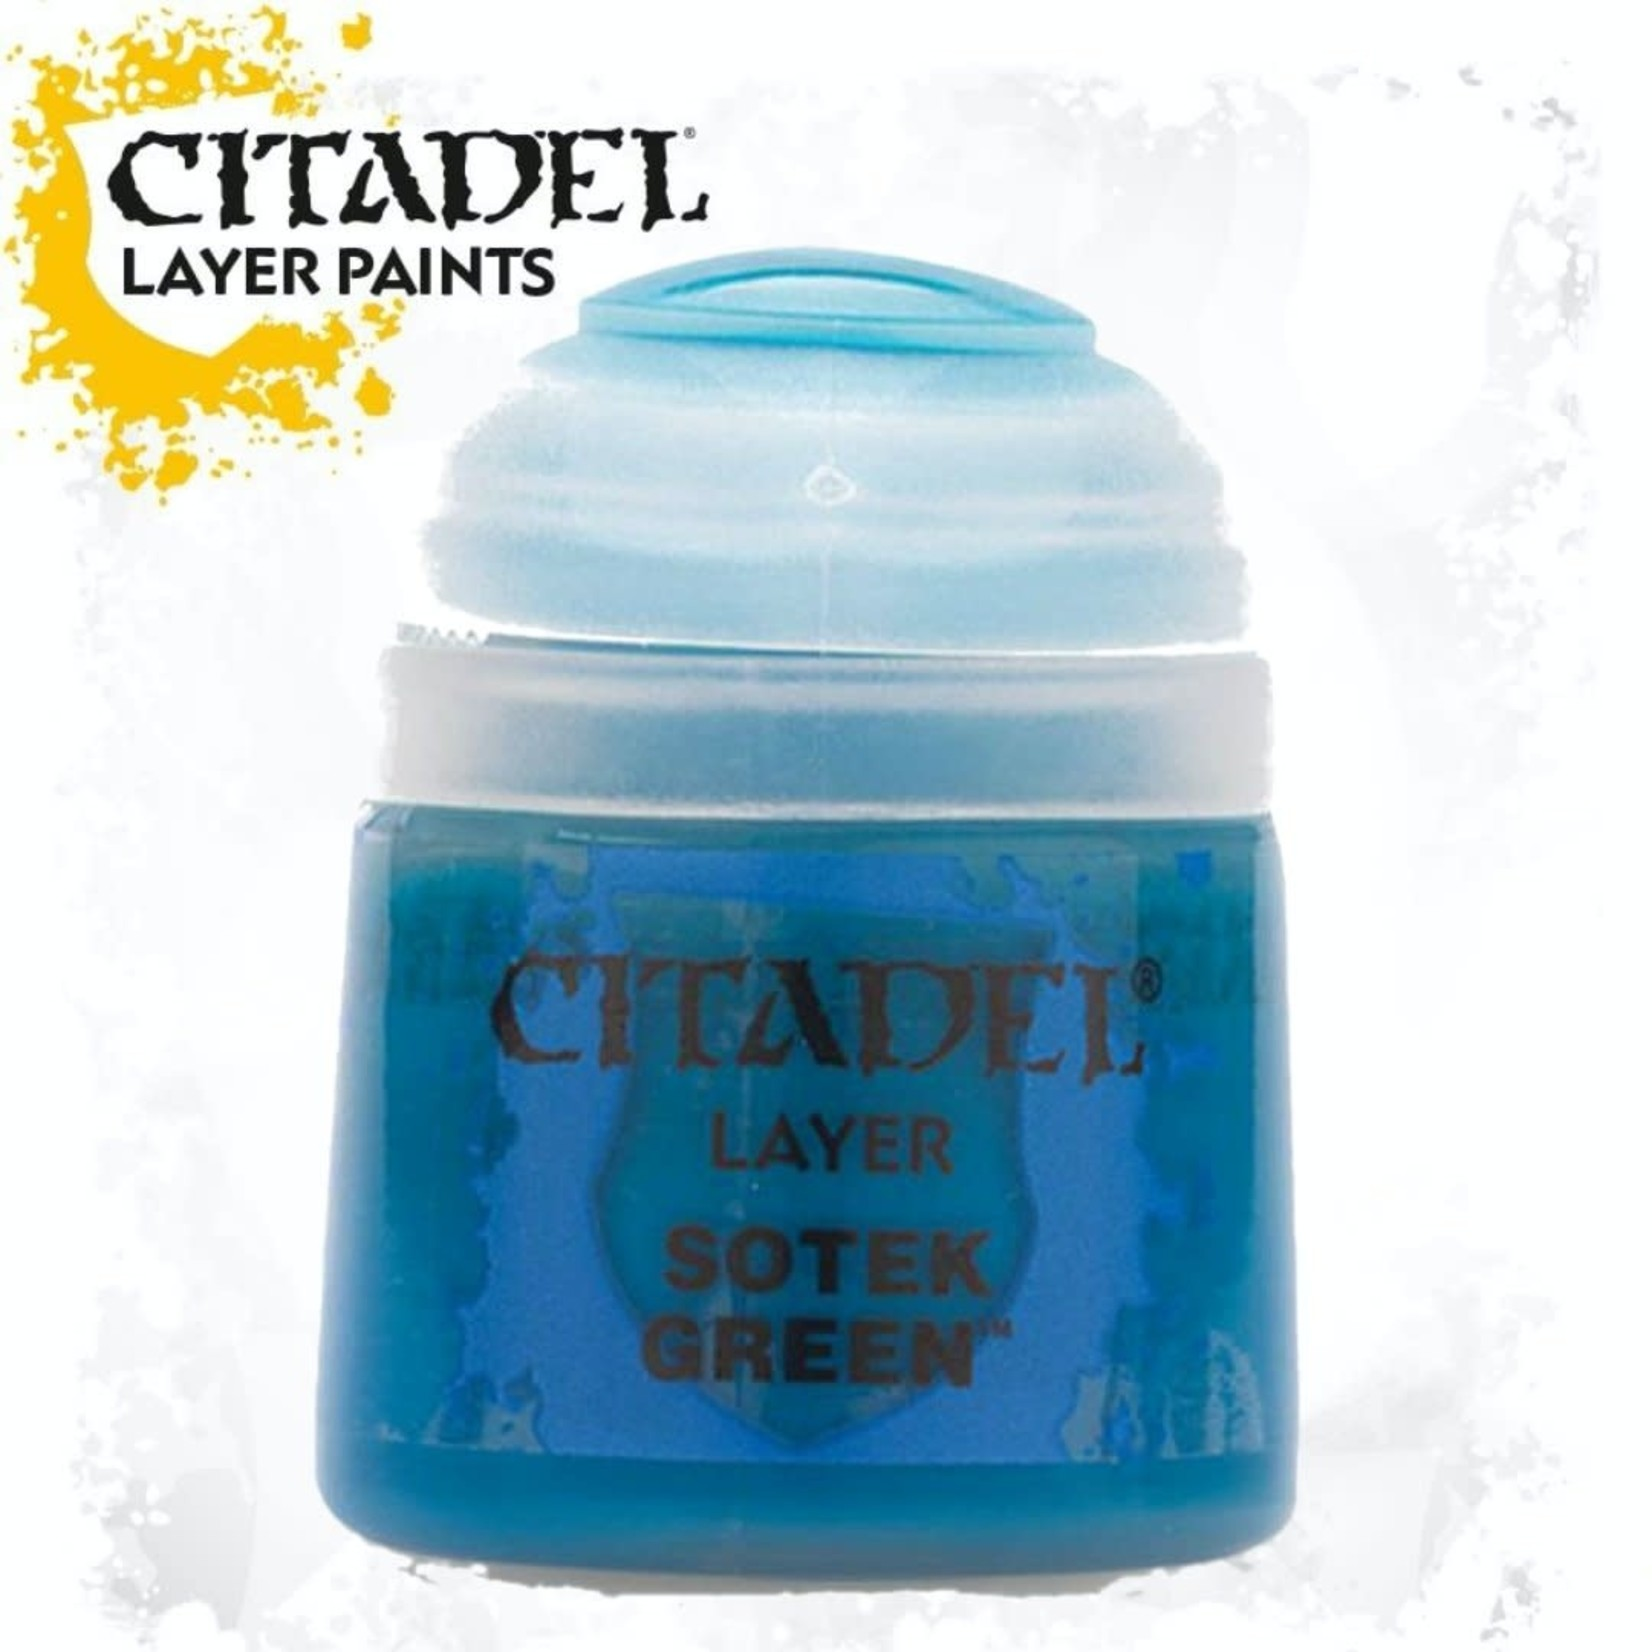 Citadel Citadel Paint - Layer: Sotek Green